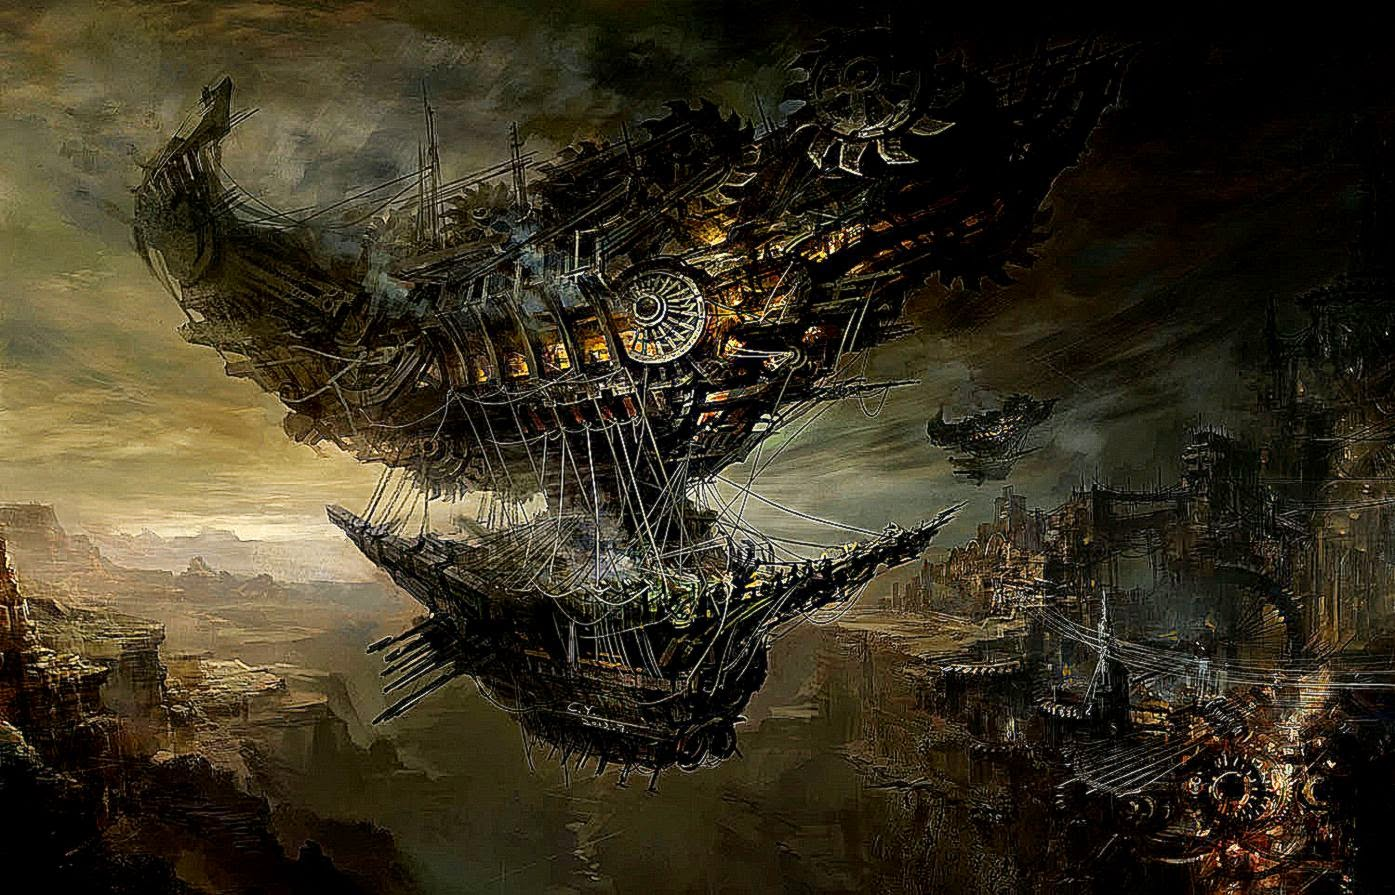 270 Steampunk Wallpapers Steampunk Backgrounds 1395x895